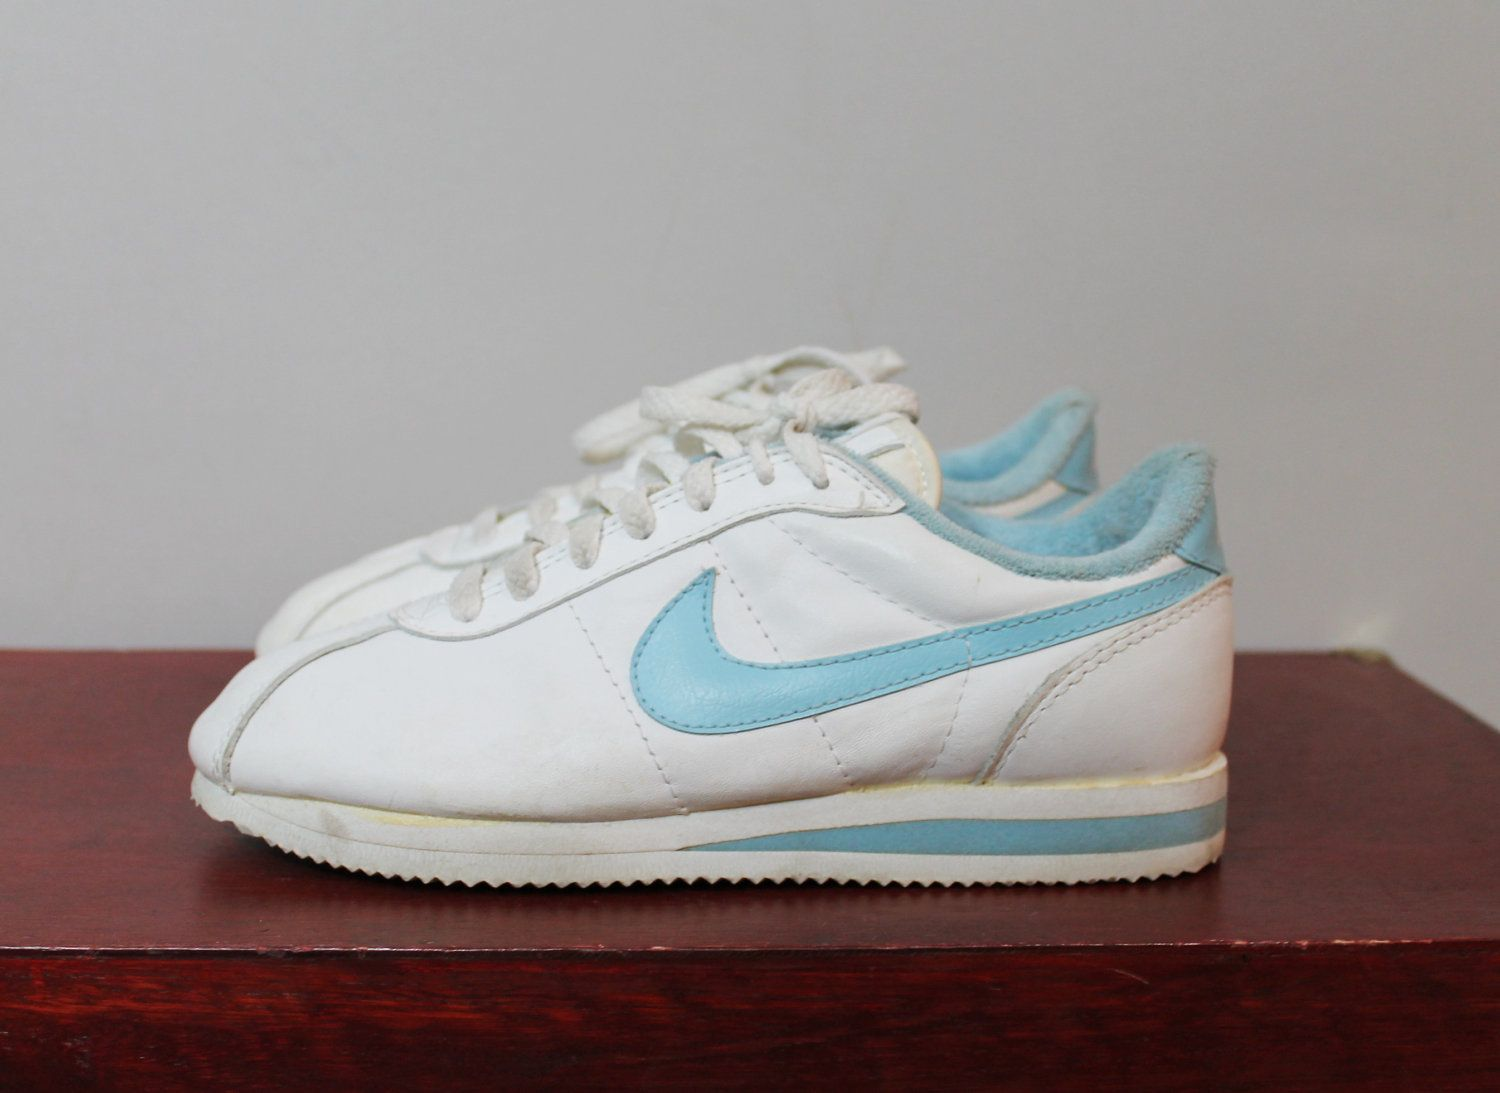 nike tennis shoes from the 80's